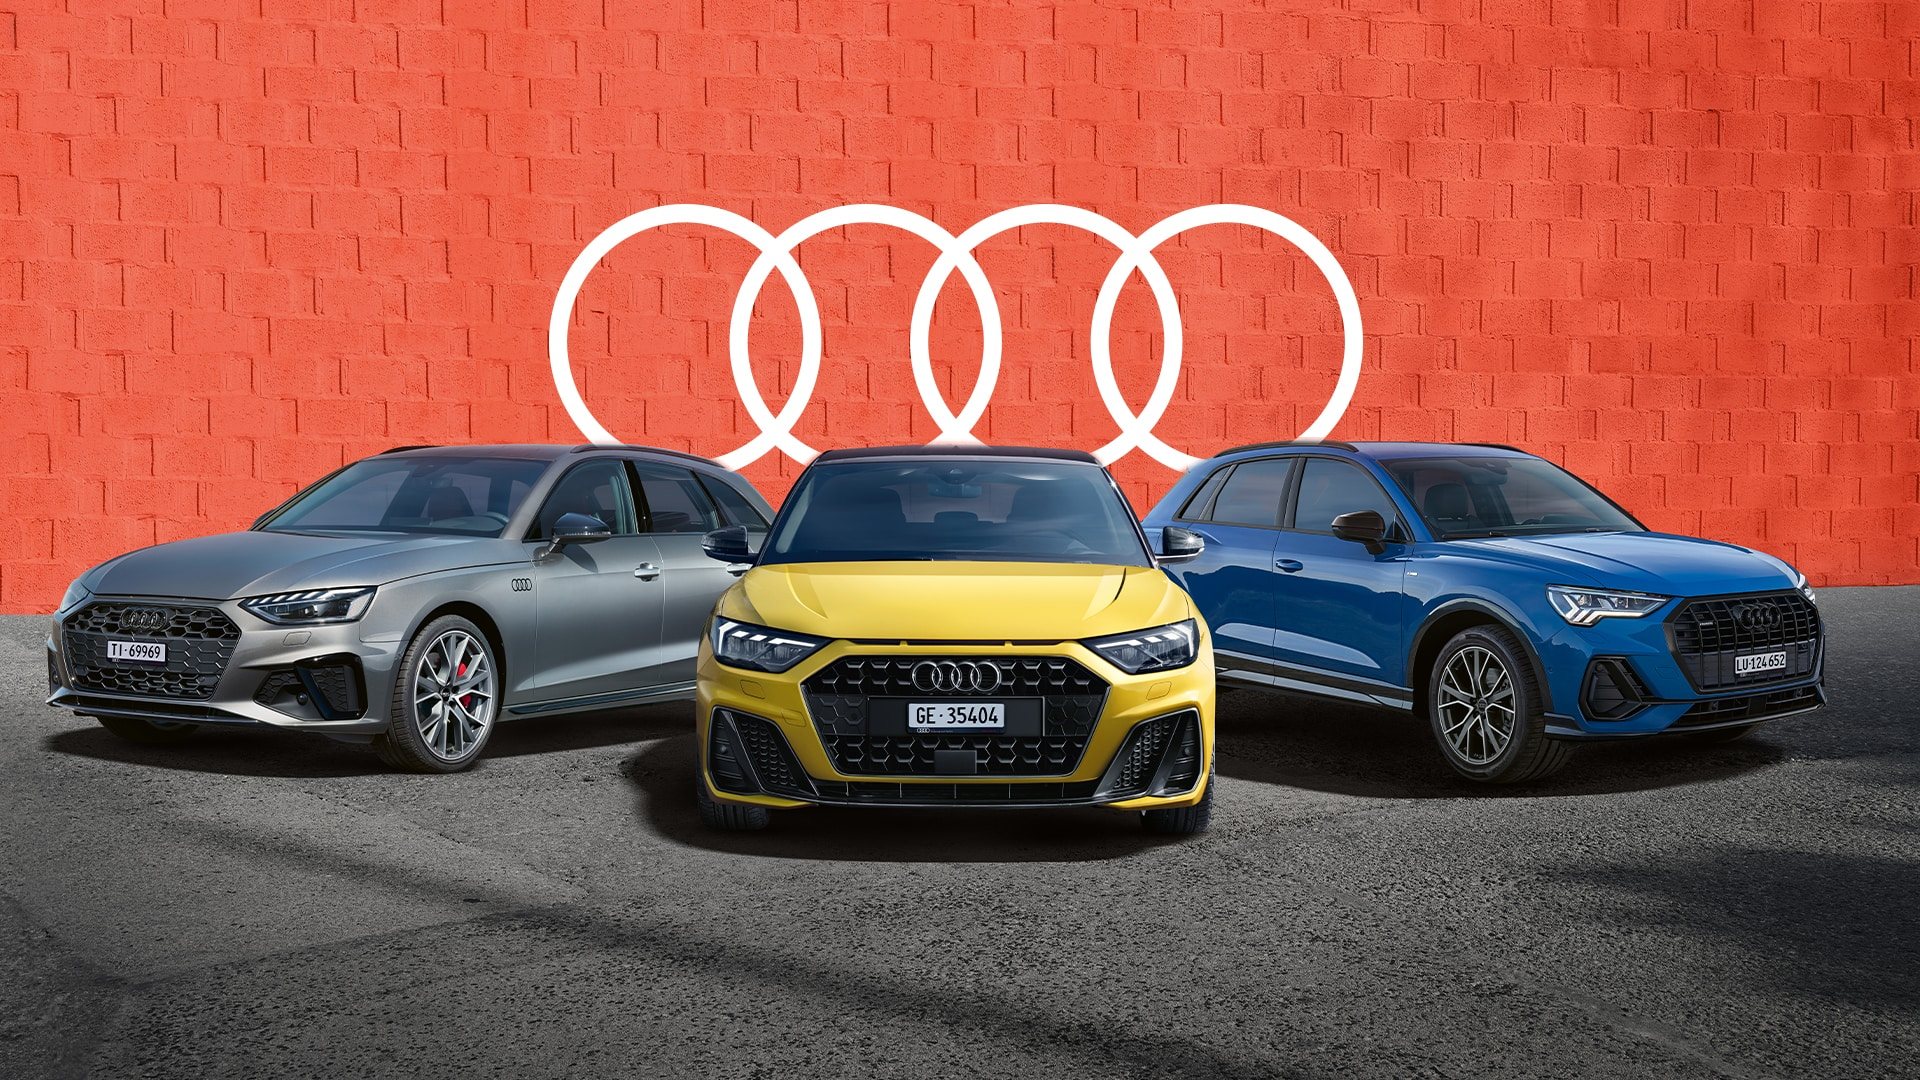 Audi_SoMo_Attraction2020_Mobile_Range.jpg